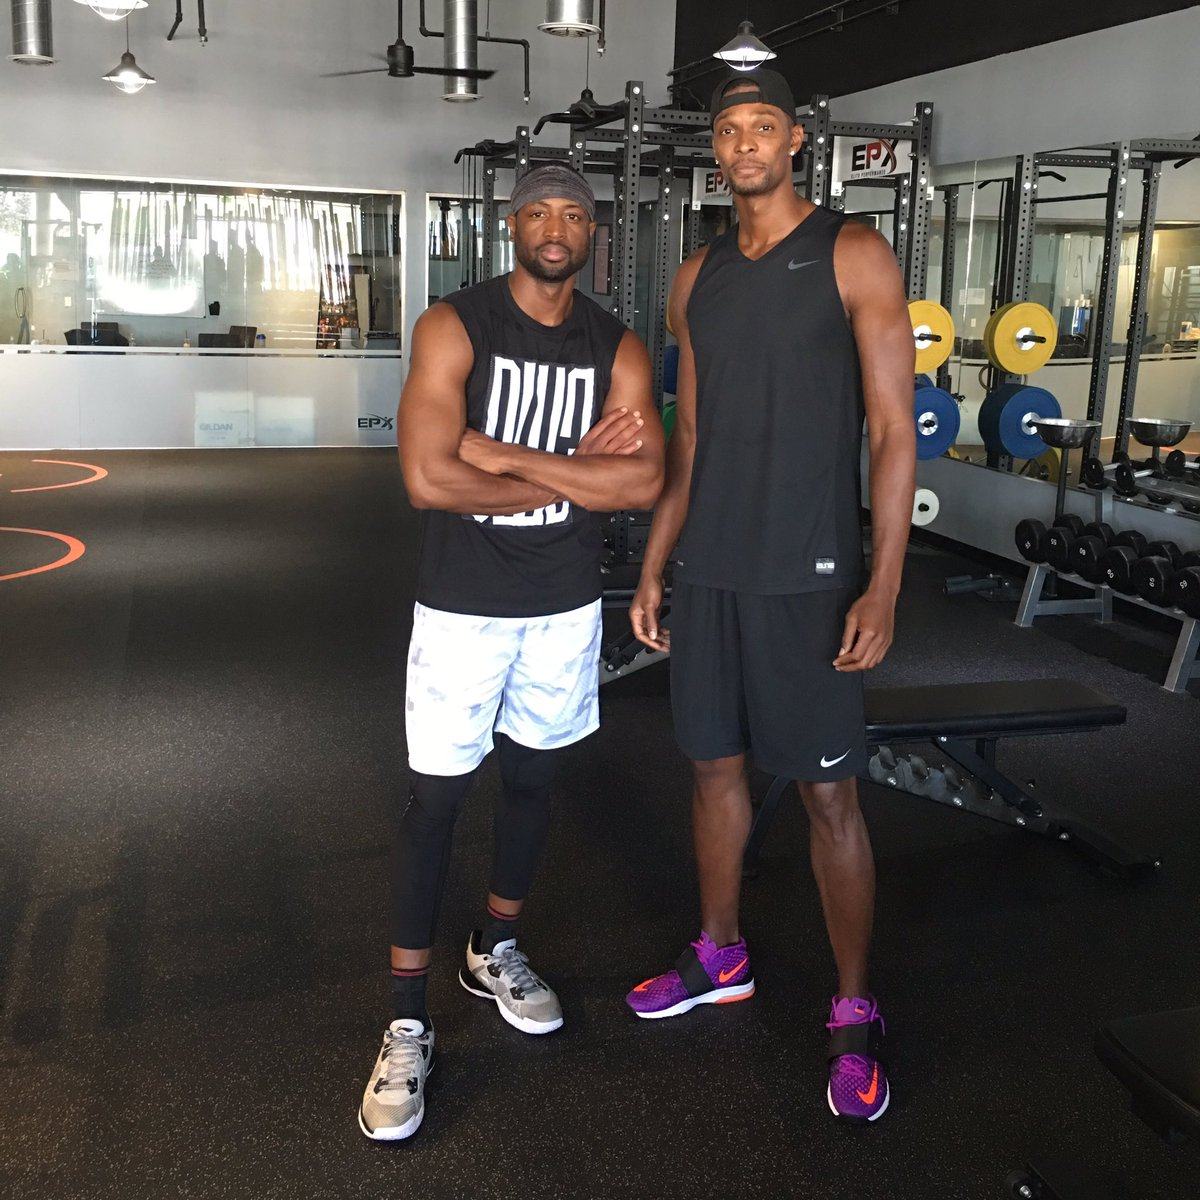 """Dwyane Wade Workout: Chris Bosh On Twitter: """"Great Workout With The Homie"""